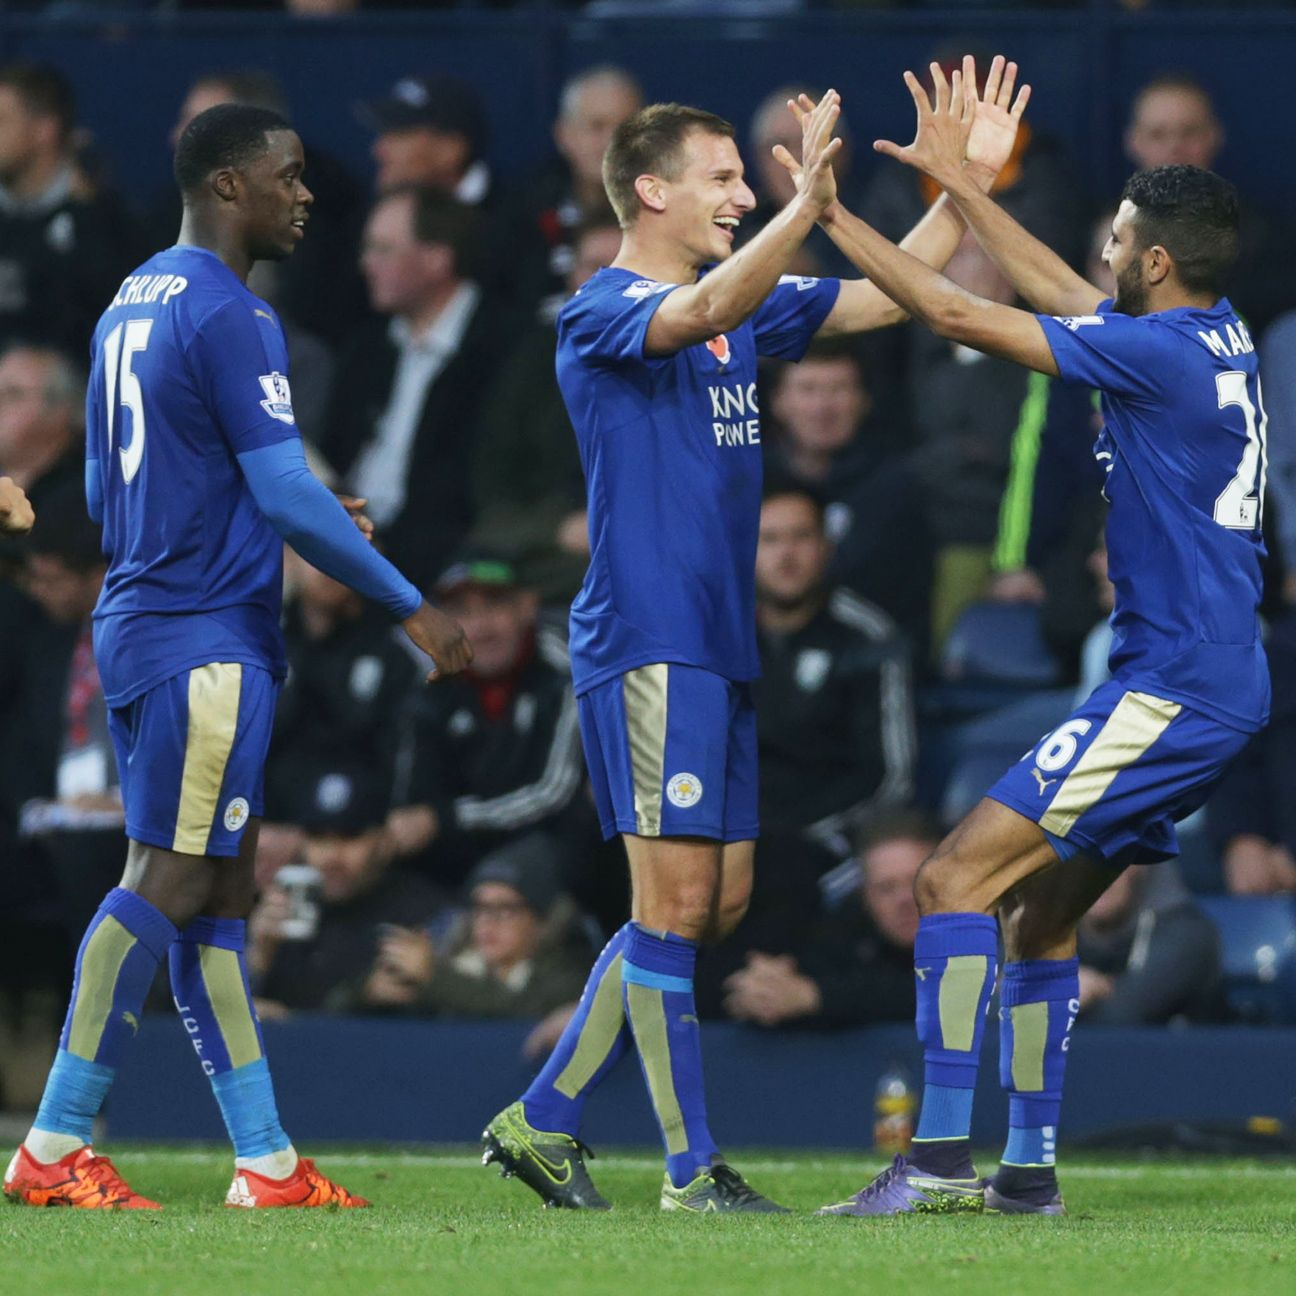 Leicester City's remarkable six-match unbeaten run will be put to the test on Saturday against Manchester United.